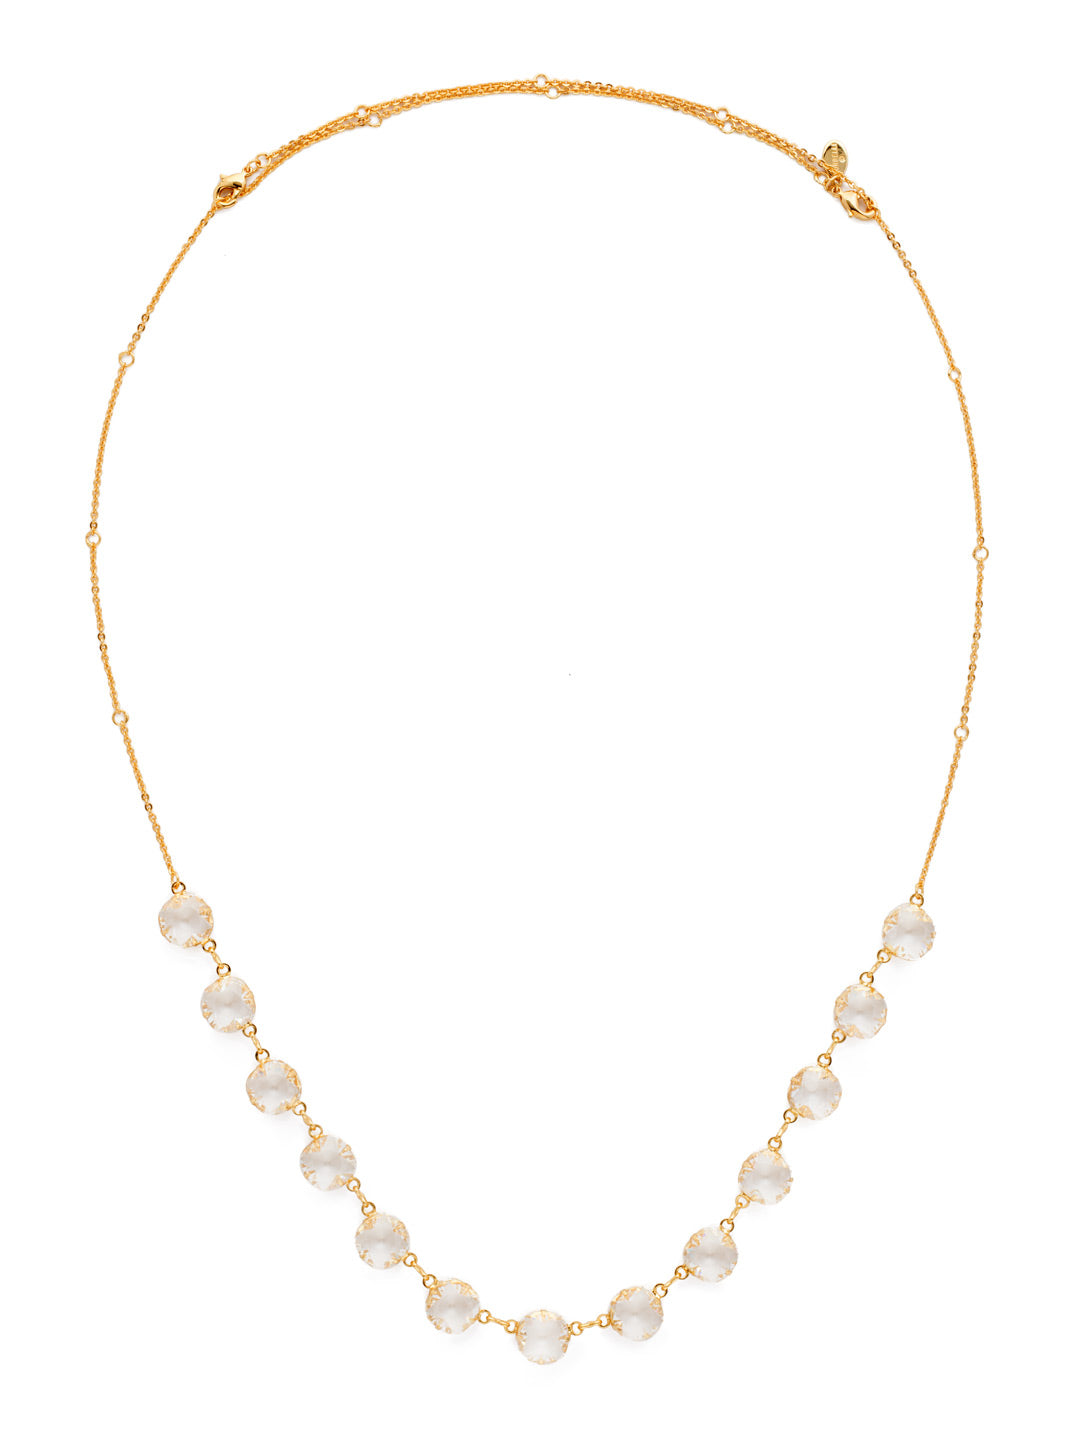 Crystal Rain Long Strand Necklace - NCR71BGCRY